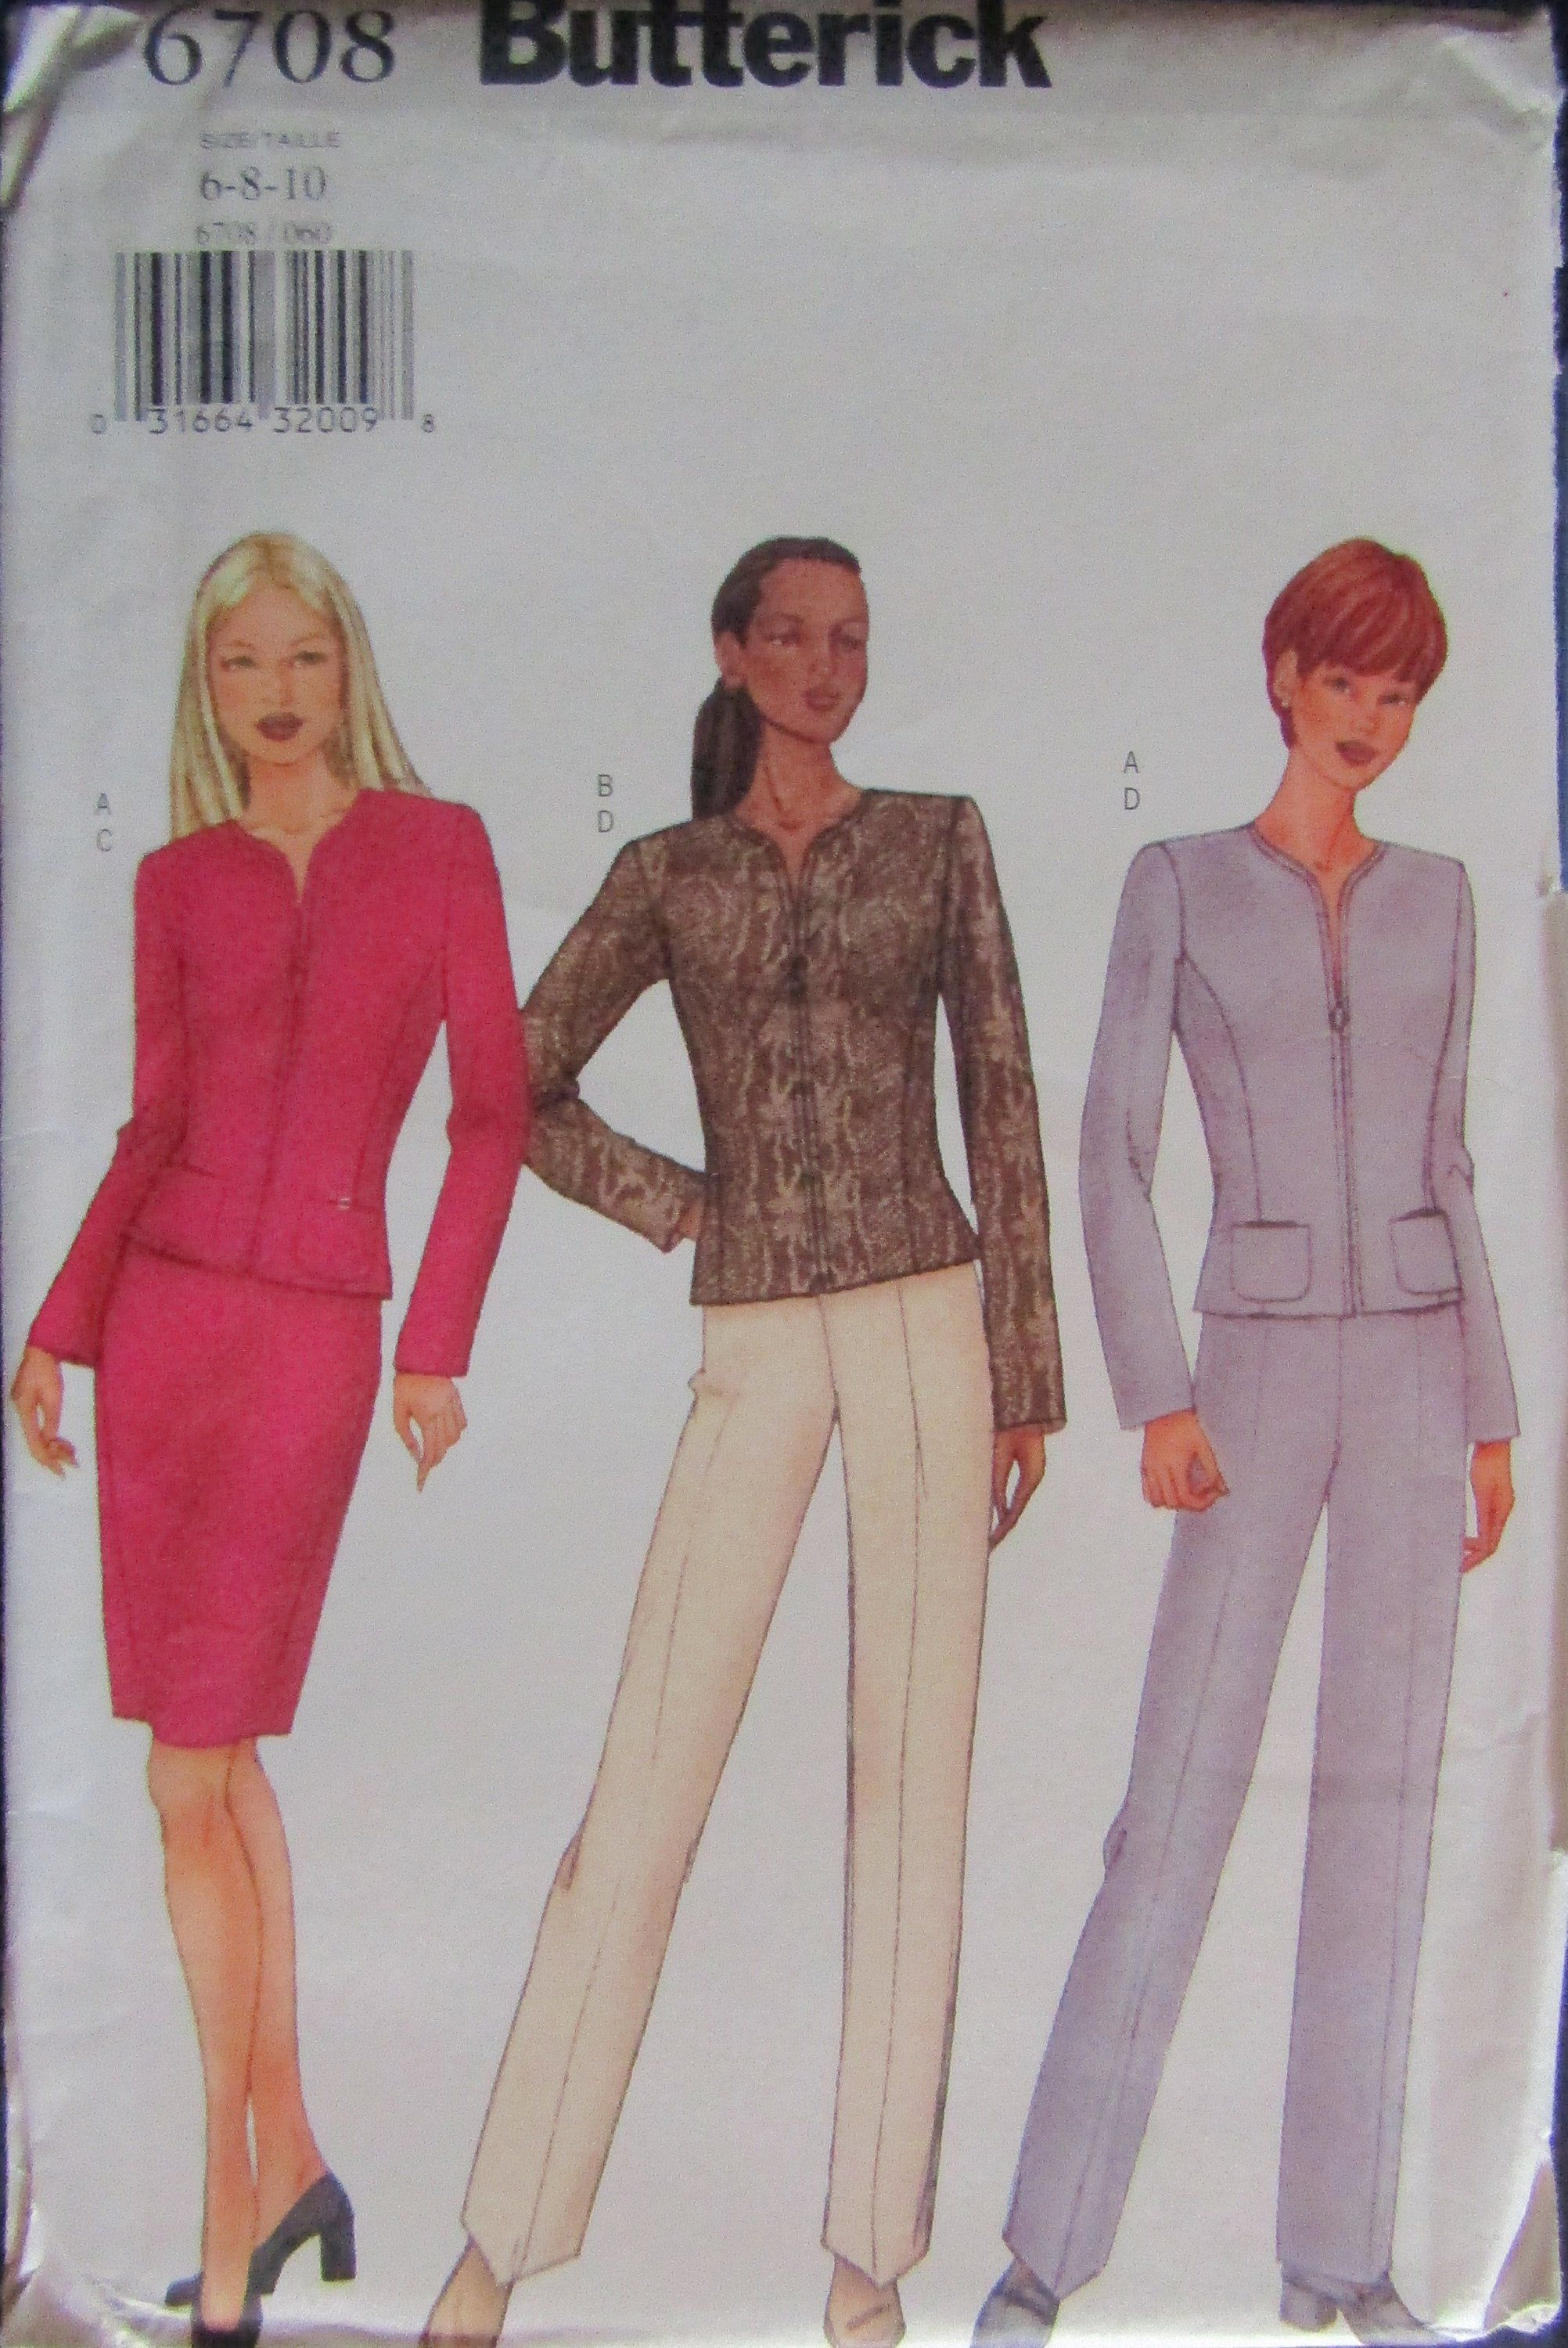 947a7c1534081 Butterick 6708 Misses Top, Skirt & Pants Sewing Pattern Size 6-10 Uncut by  SimpsonDesignsStudio on Etsy